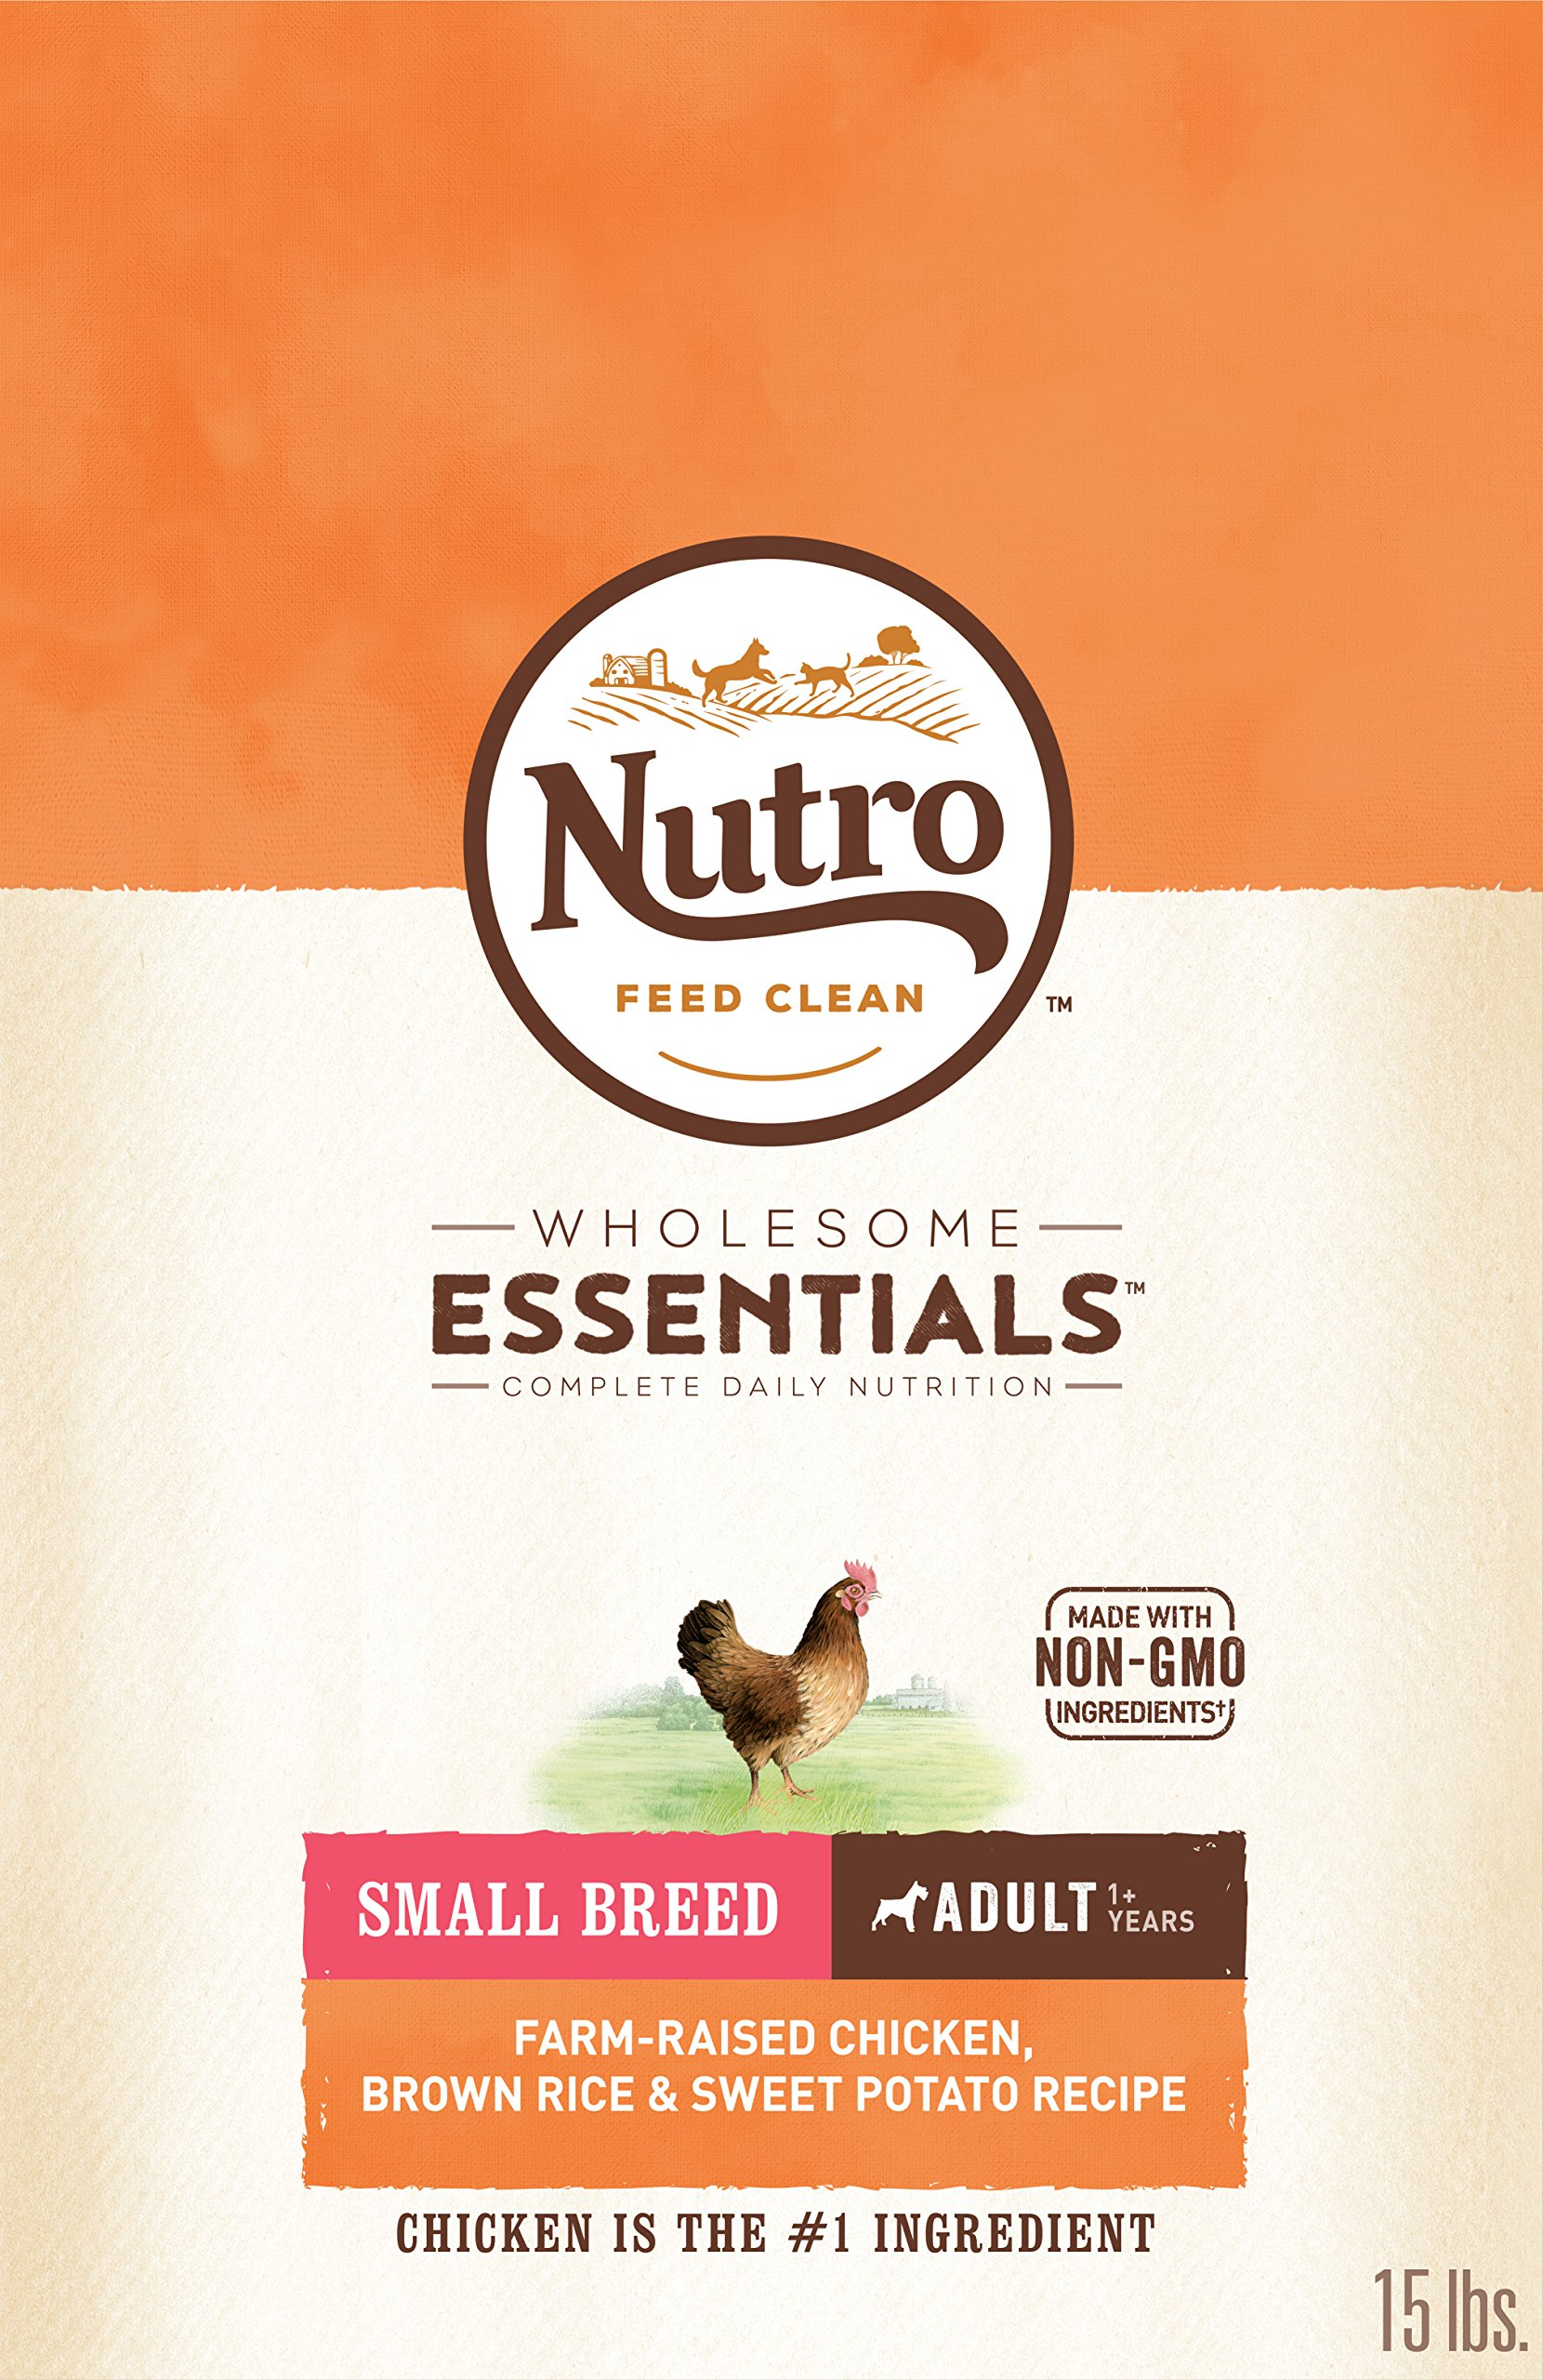 Nutro Wholesome Essentials Adult Small Breed Dry Dog Food Farm-Raised Chicken, Brown Rice & Sweet Potato Recipe, 15 lb. Bag